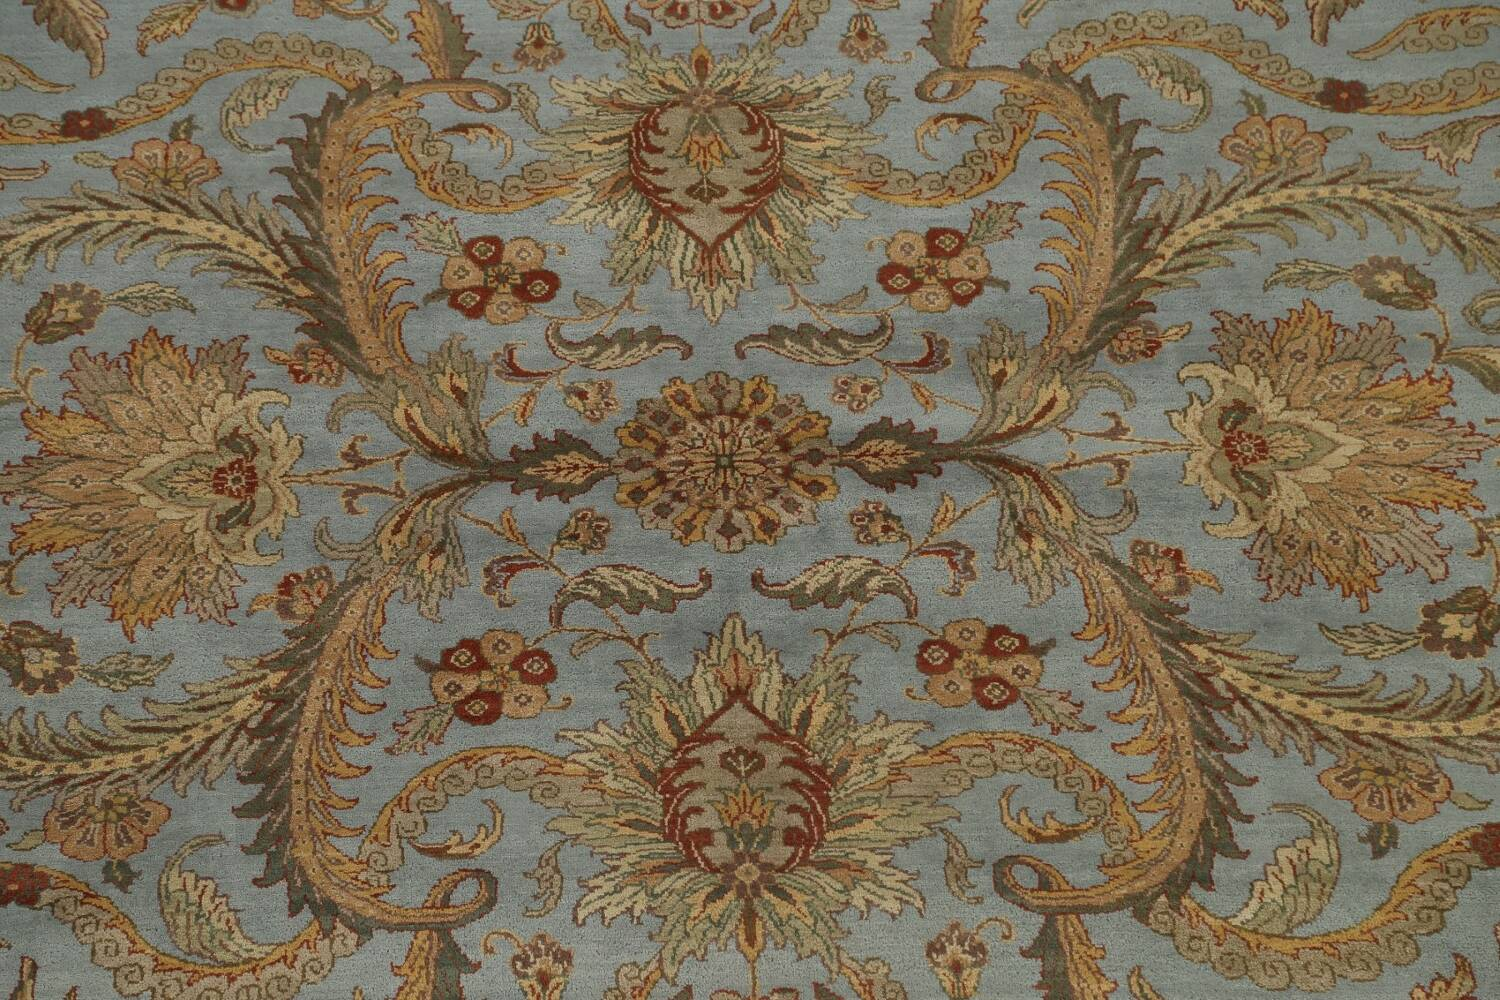 All-Over Floral Agra Oriental Area Rug 12x15 image 4